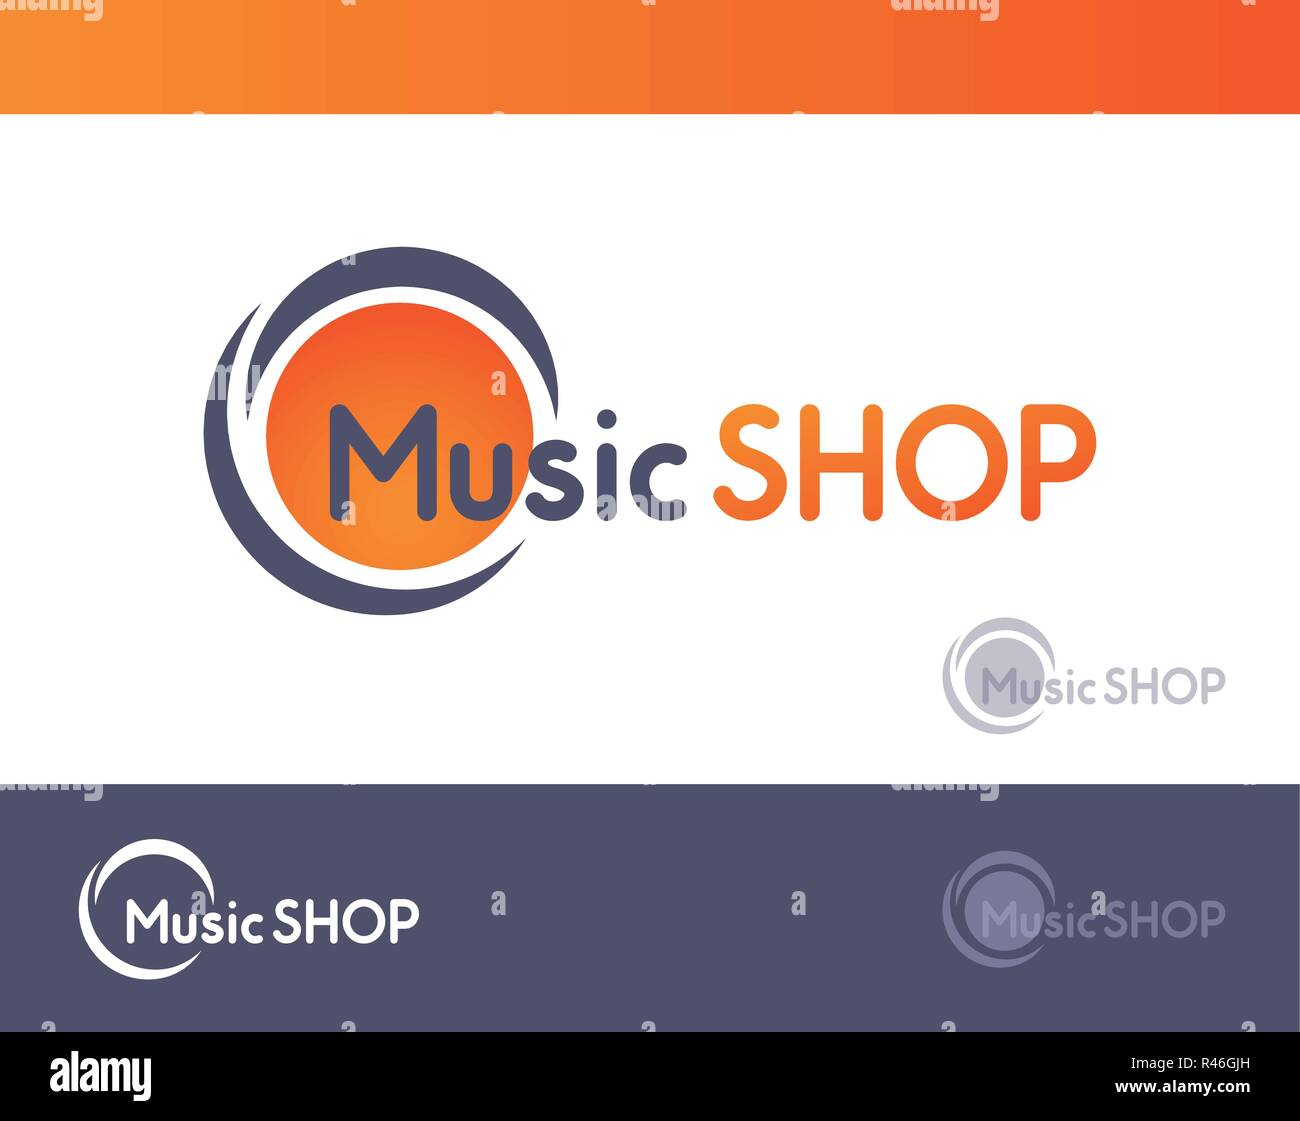 Logo for Music SHOP isolated on white and dark grey blackground